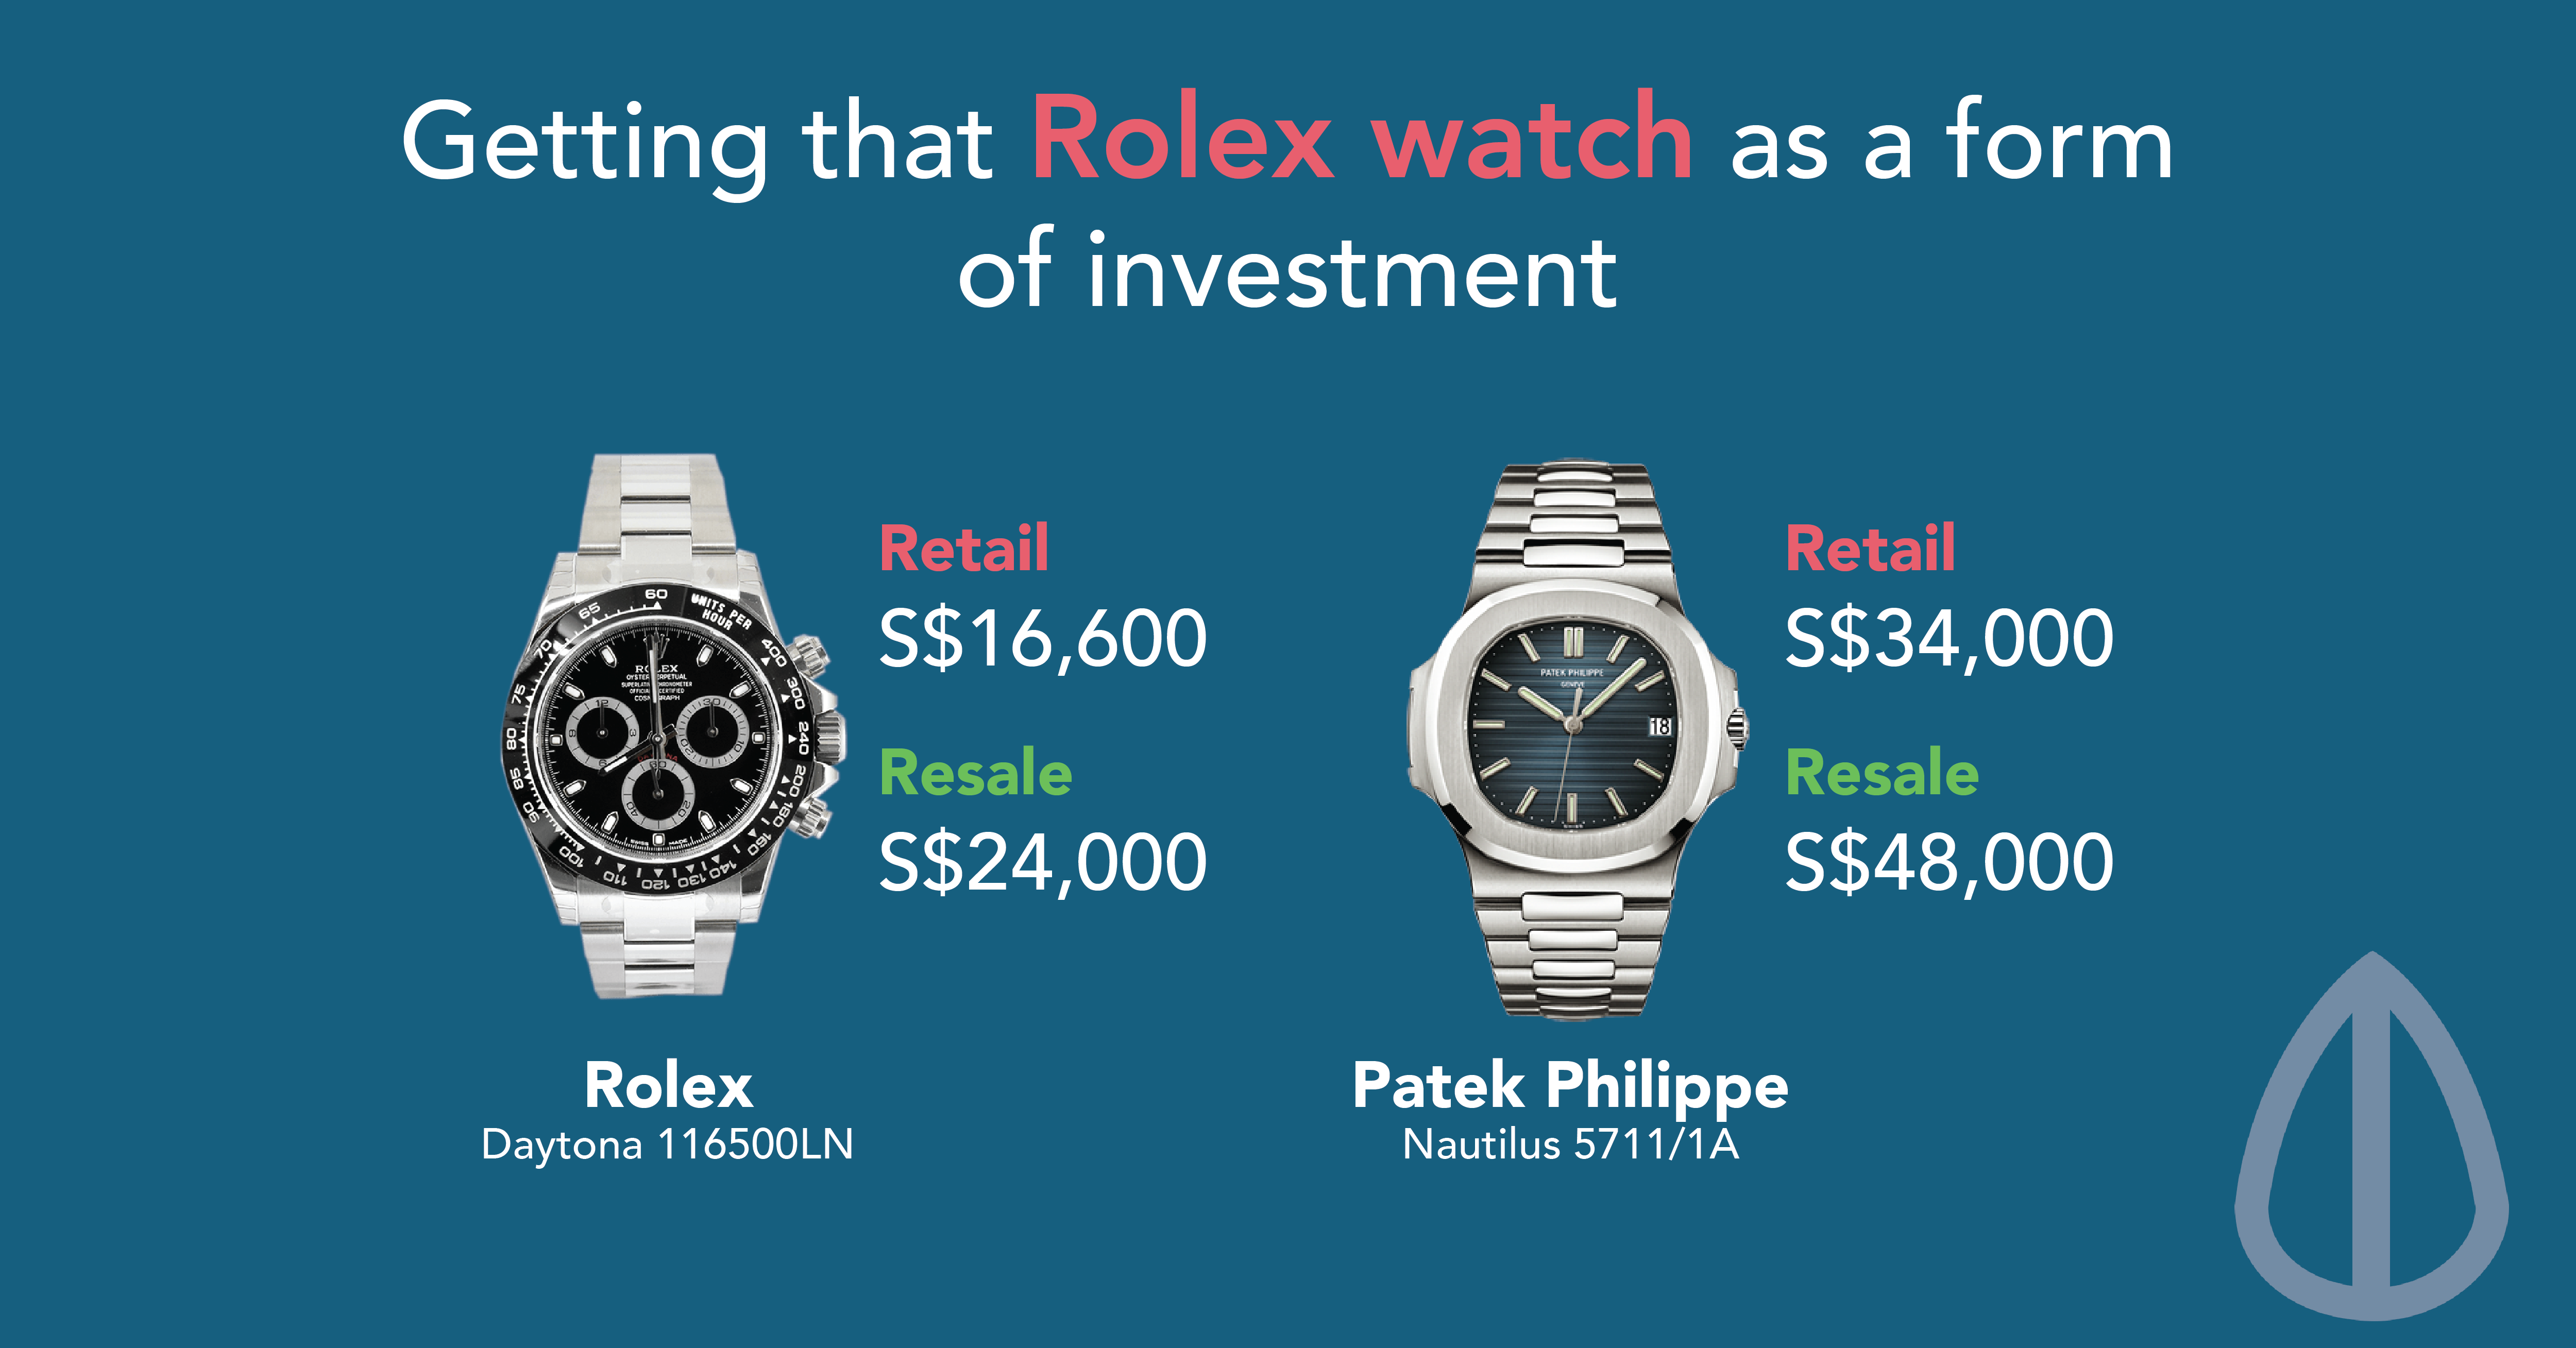 Working Adults: Things To Lookout For When Getting A Luxury Watch As An Investment?